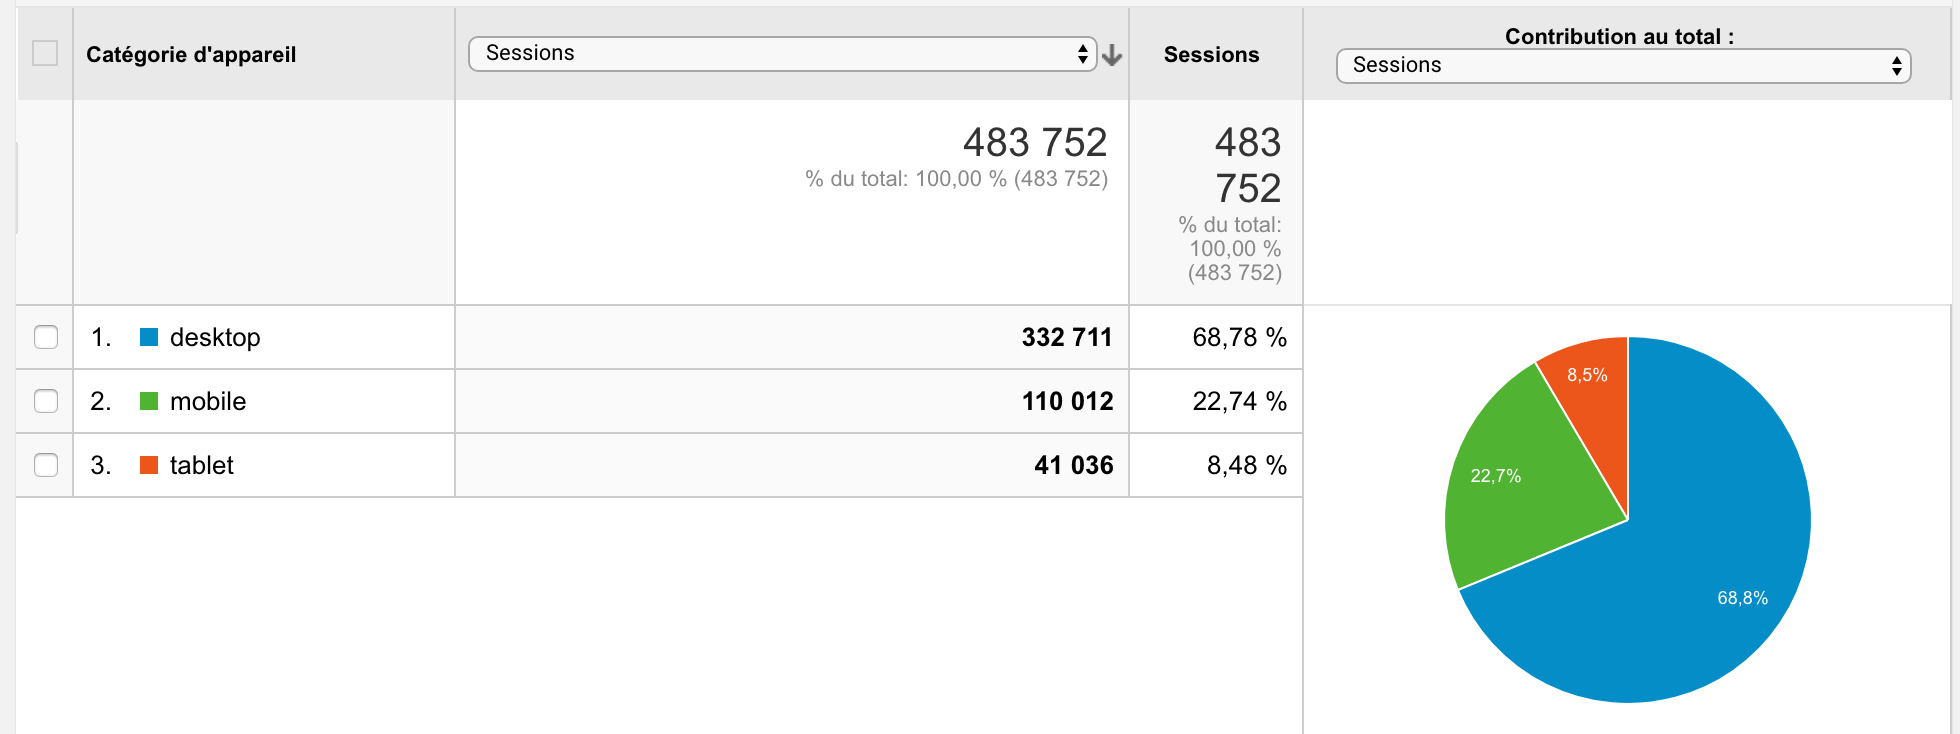 google analytics : mobile users share is 30%